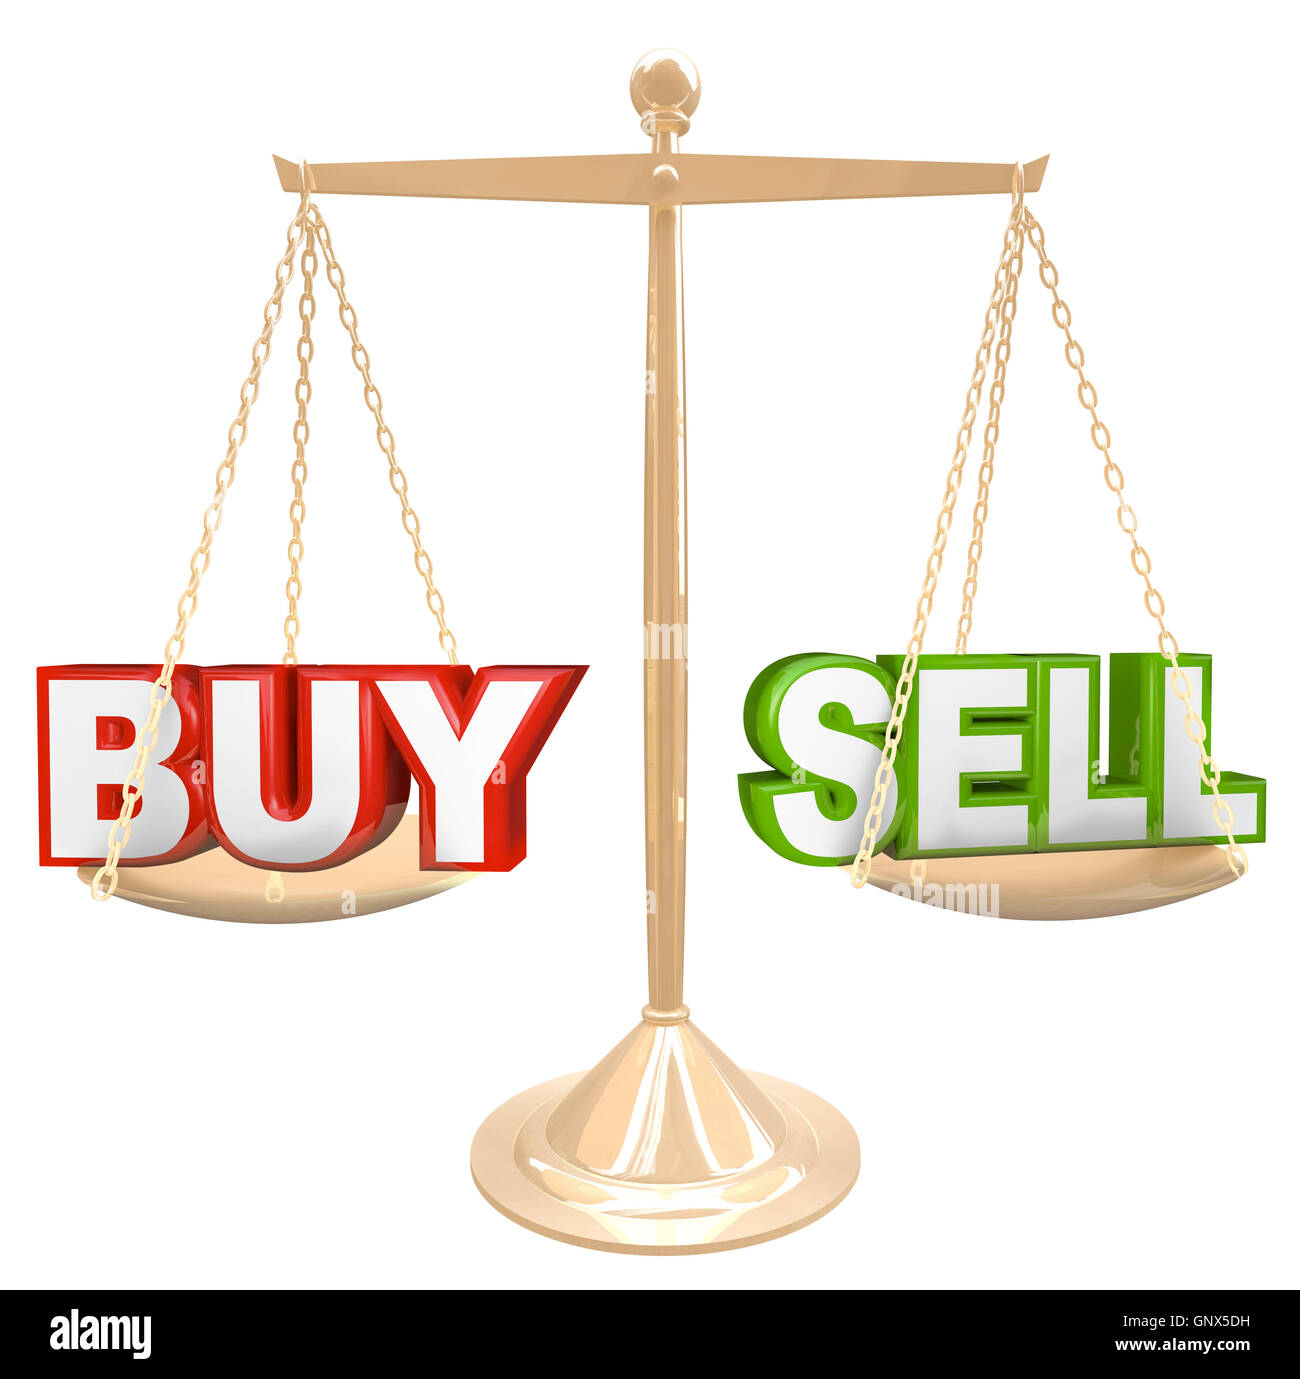 Buy Vs Words on Scale Comparing Risks and Benefits - Stock Image